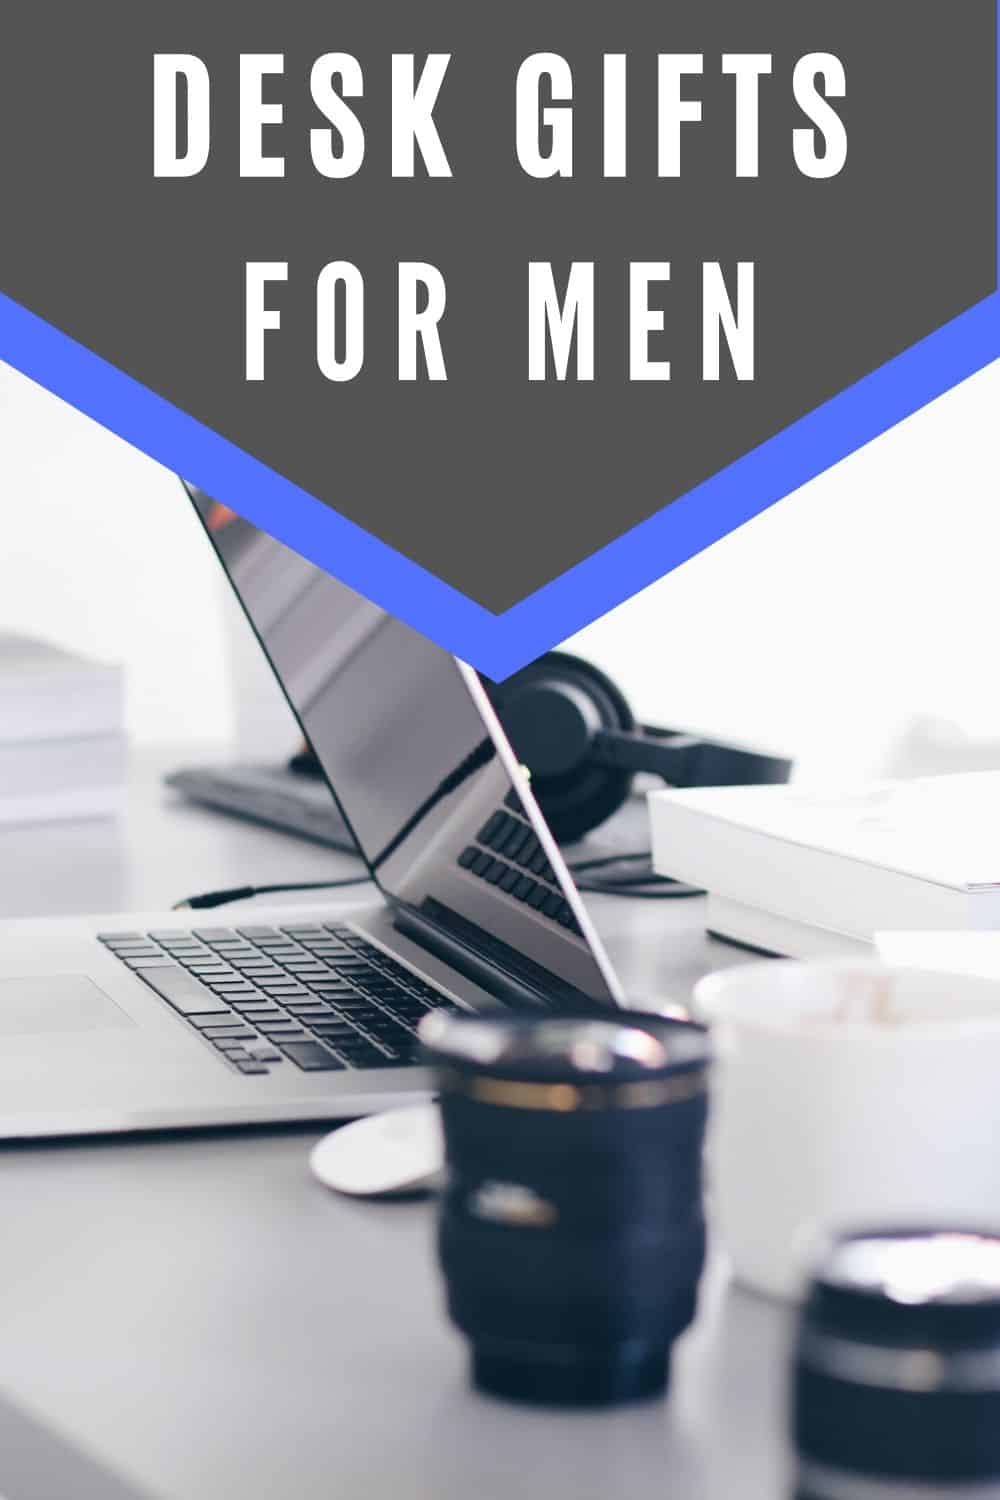 Desk Gifts for Men - Desk and Office Gift Ideas for Dad, Grandads, Brothers, Coworkers and Bosses